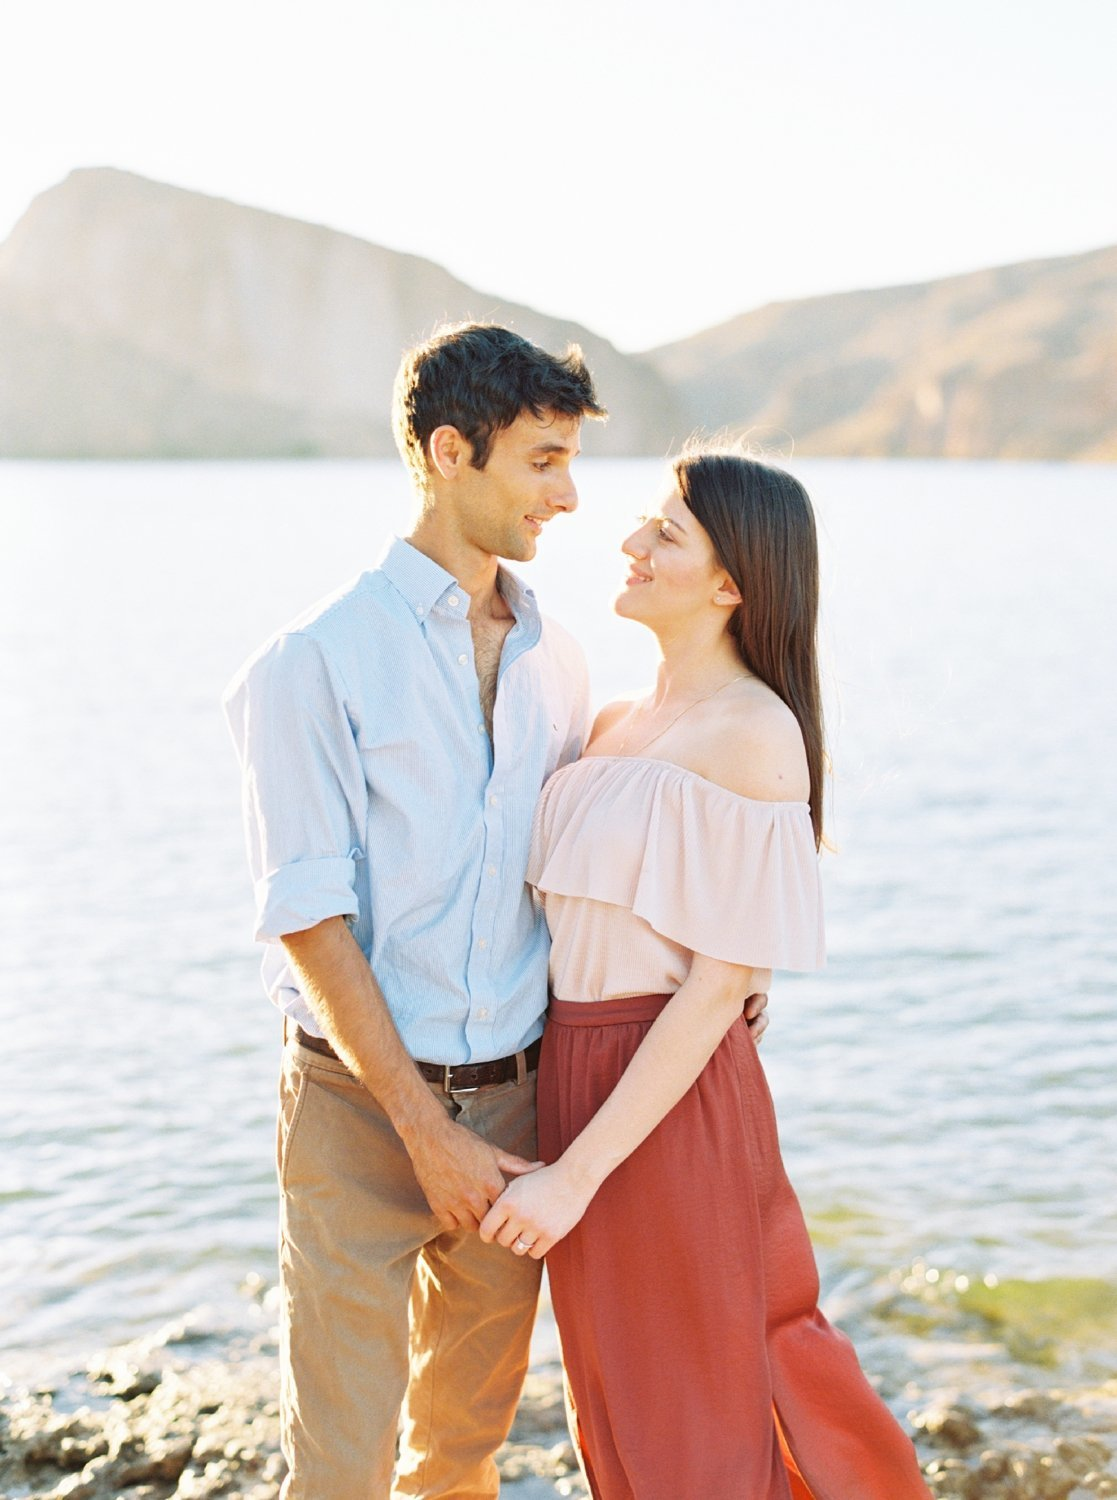 lake-arizona-engagement-session-wedding-photographer-Rachael-Koscica_0561